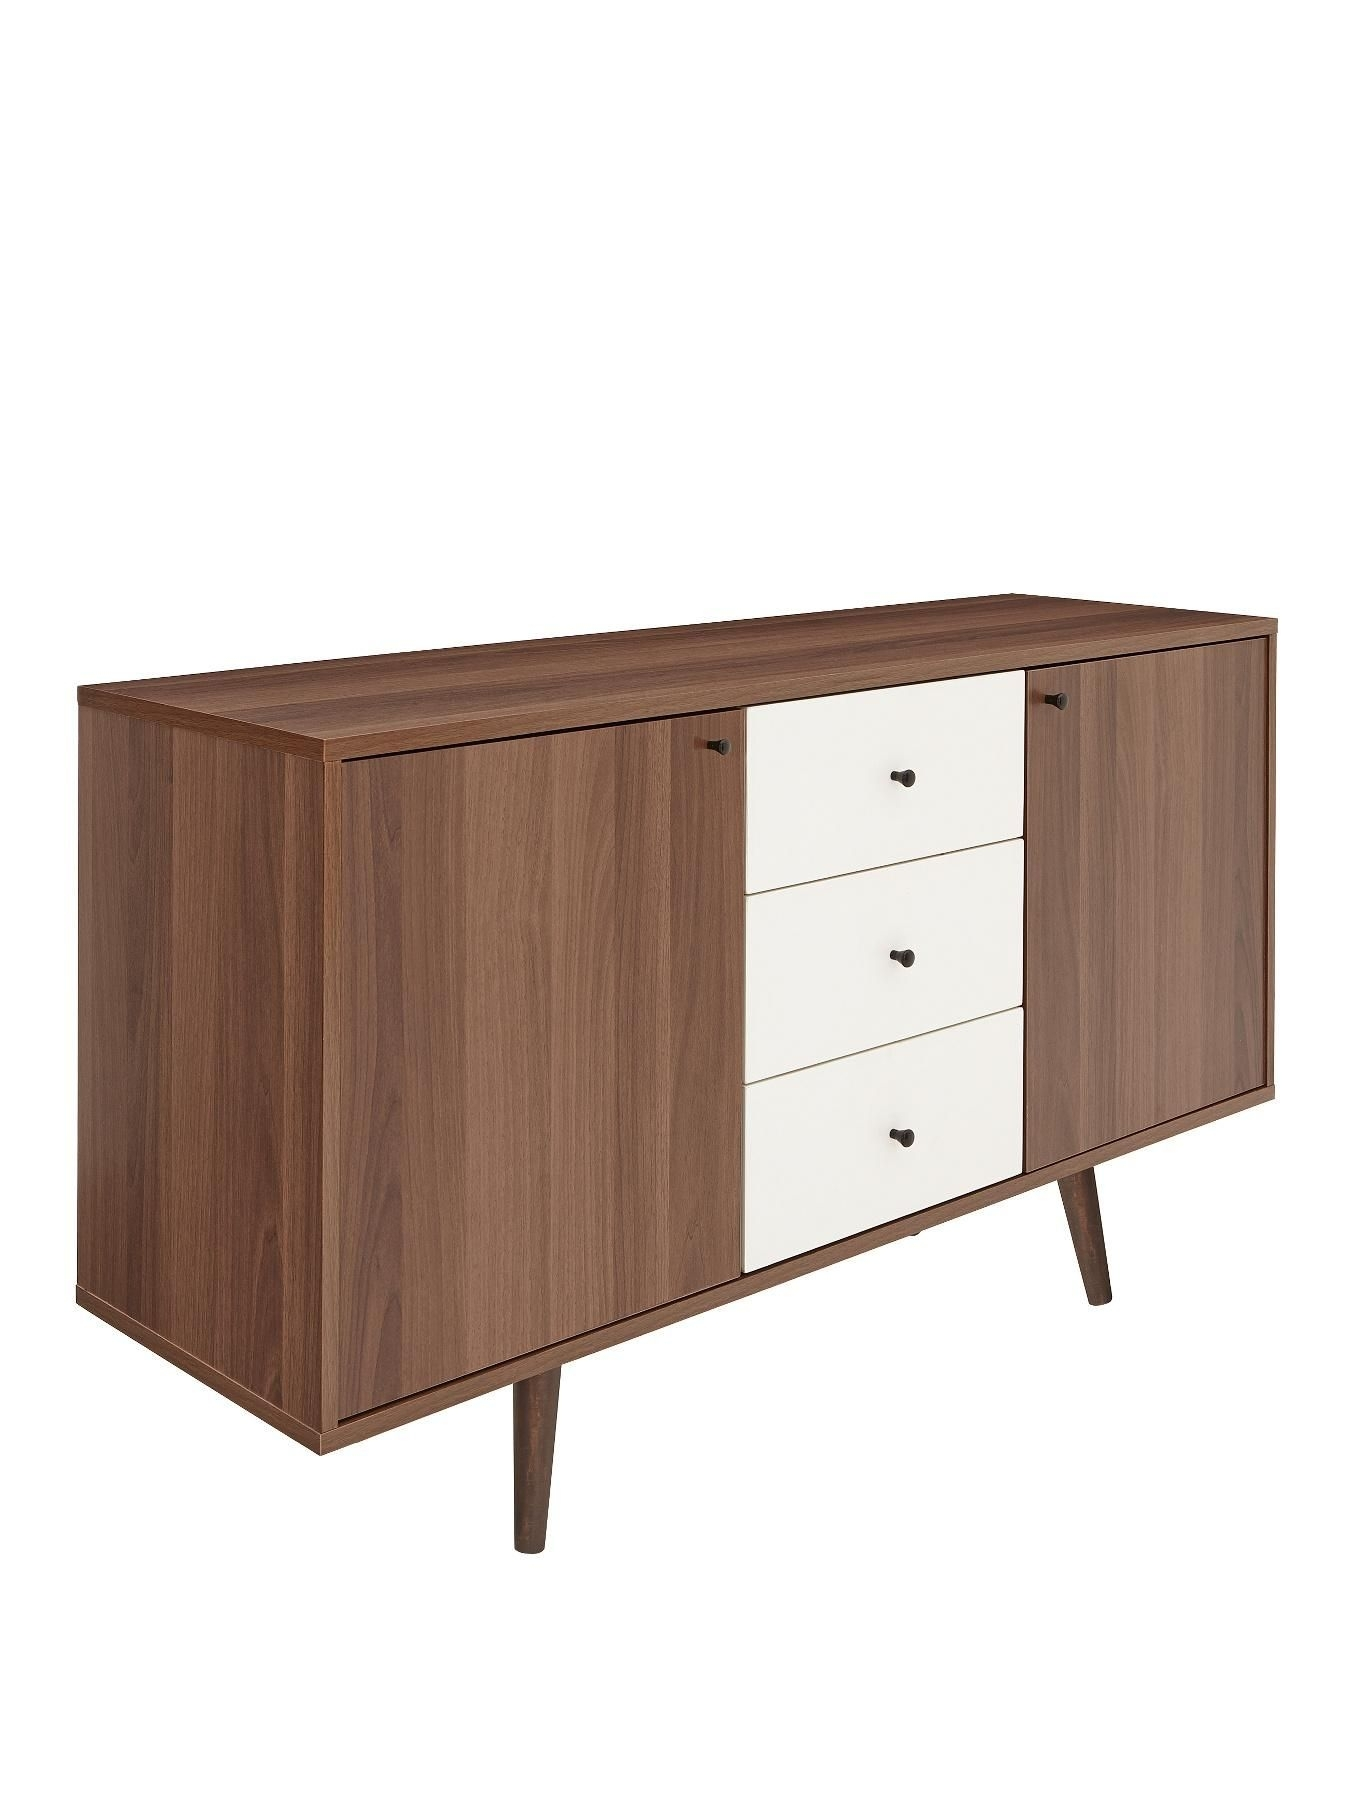 Inspiration about Monty Retro Large Sideboard | Energia Part 1 Office Finishes Throughout Recent Walnut Finish 2 Door/3 Drawer Sideboards (#4 of 20)